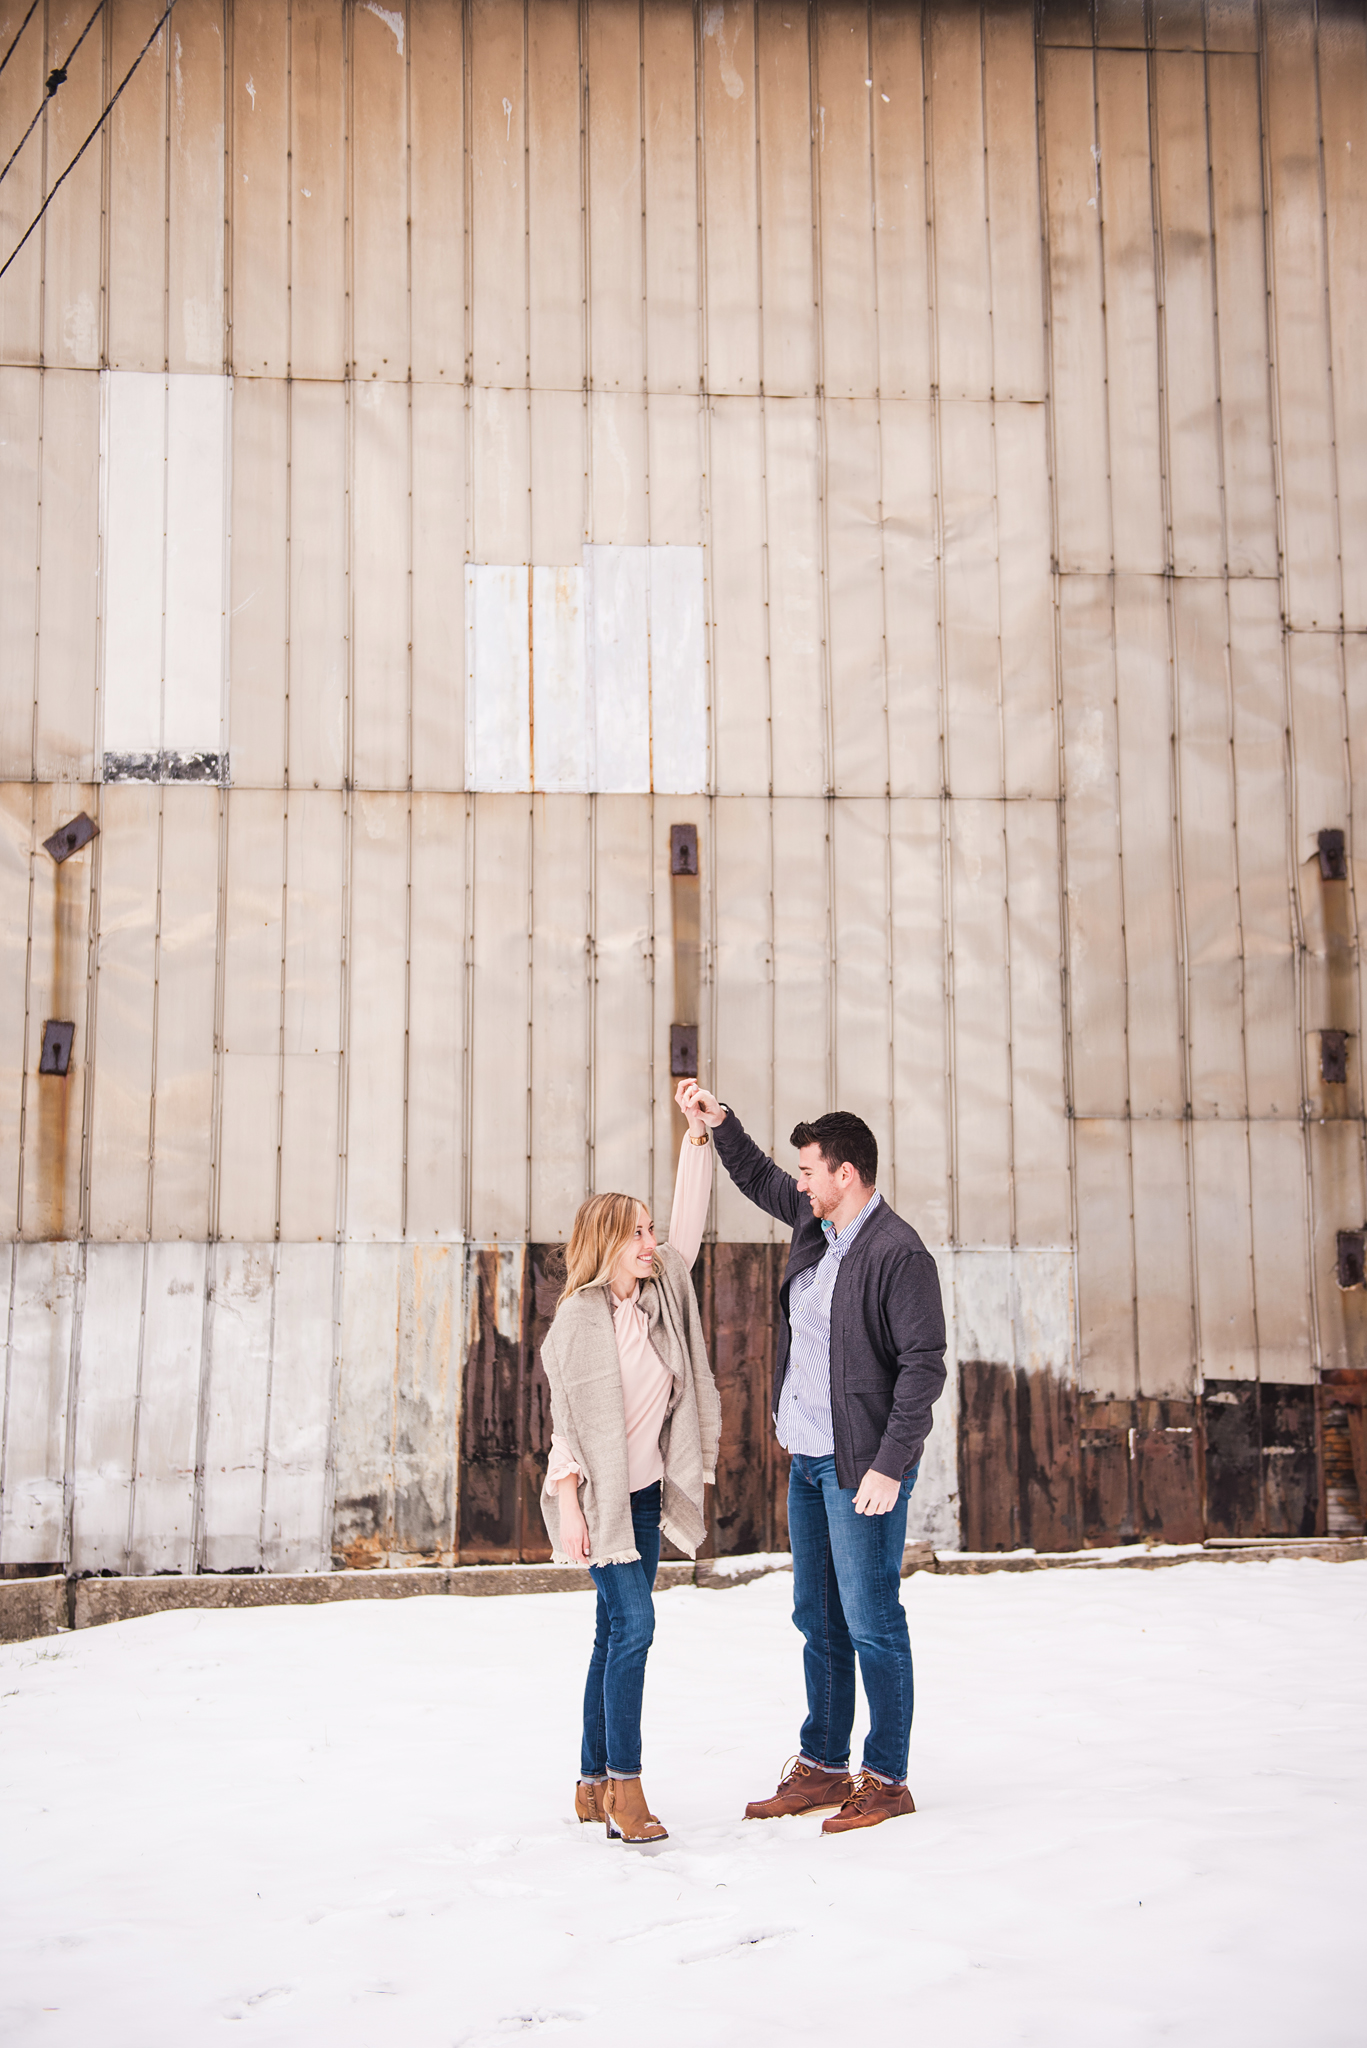 Schoen_Place_Rochester_Engagement_Session_JILL_STUDIO_Rochester_NY_Photographer_DSC_1222.jpg